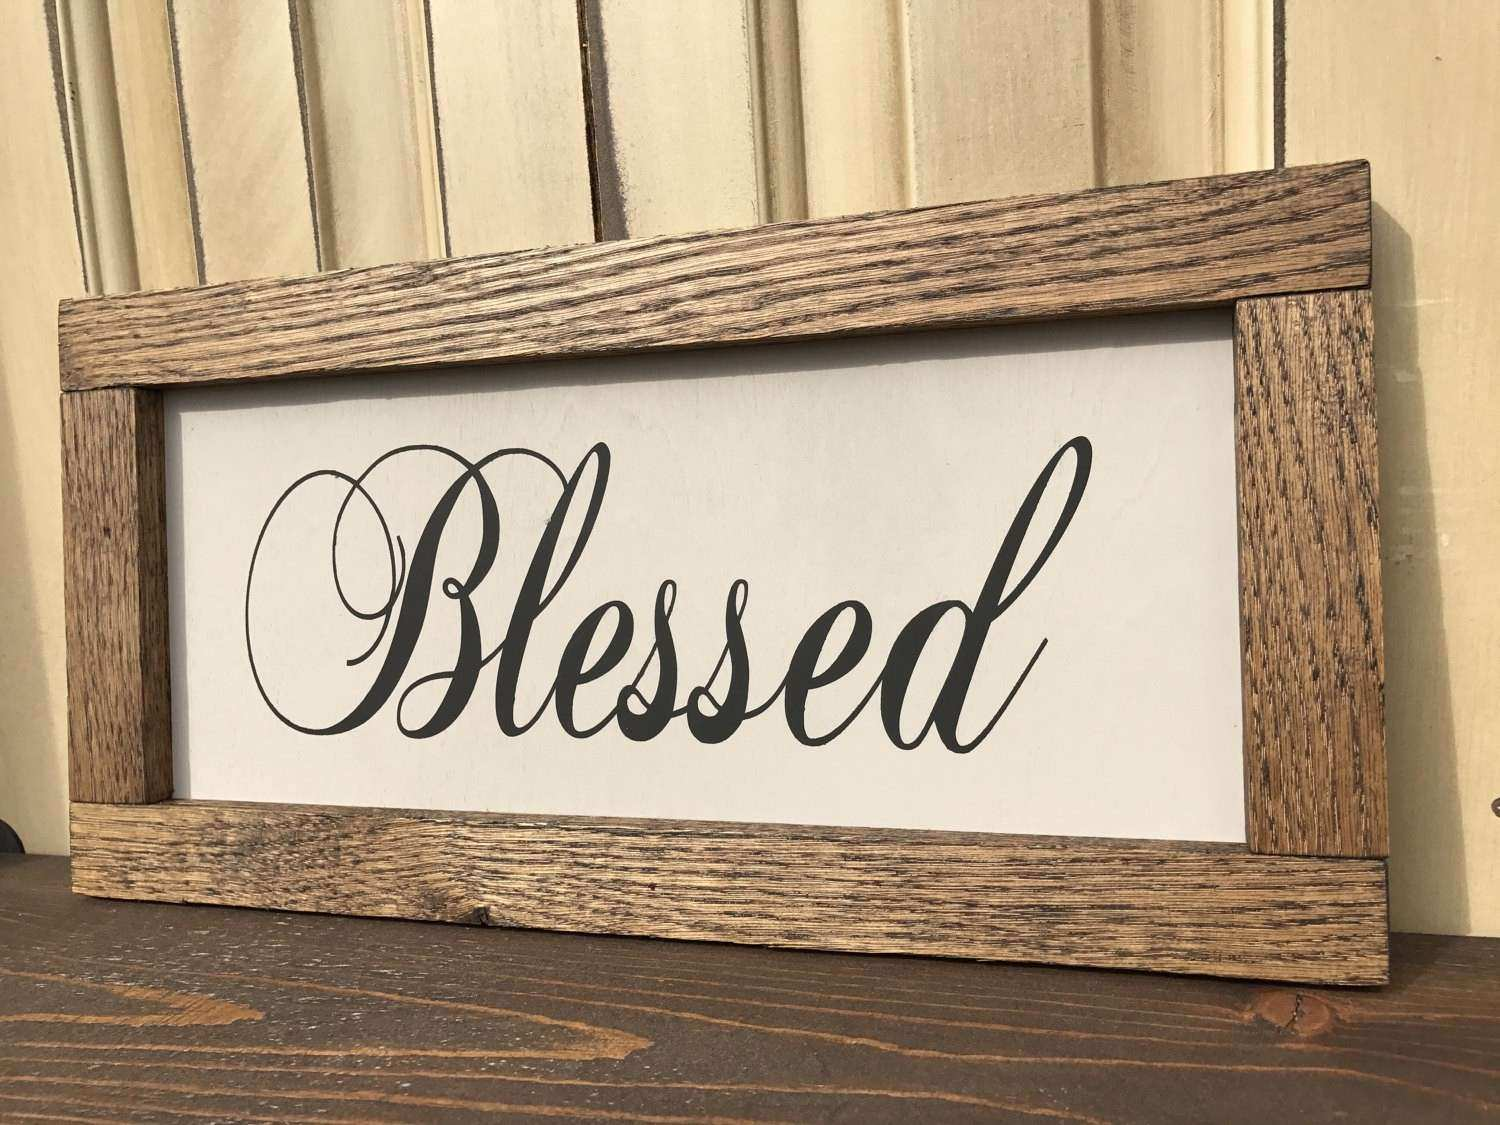 Blessed Wall Decor Unique Christian Wall Art Blessed Sign Rustic Home Decor